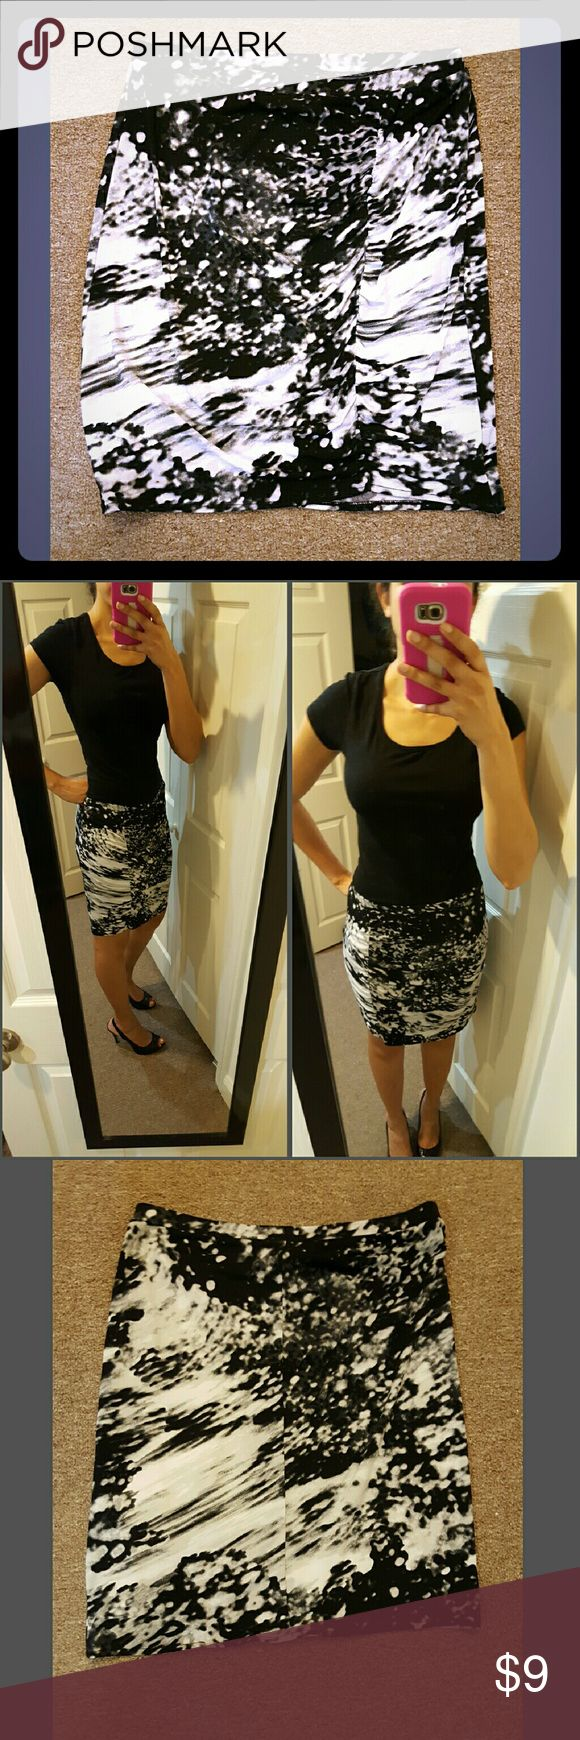 Black and white skirt- never used Apostrophe black and white skirt, never used. Good for going out or can dress it up to look professional. Apostrophe Skirts Pencil